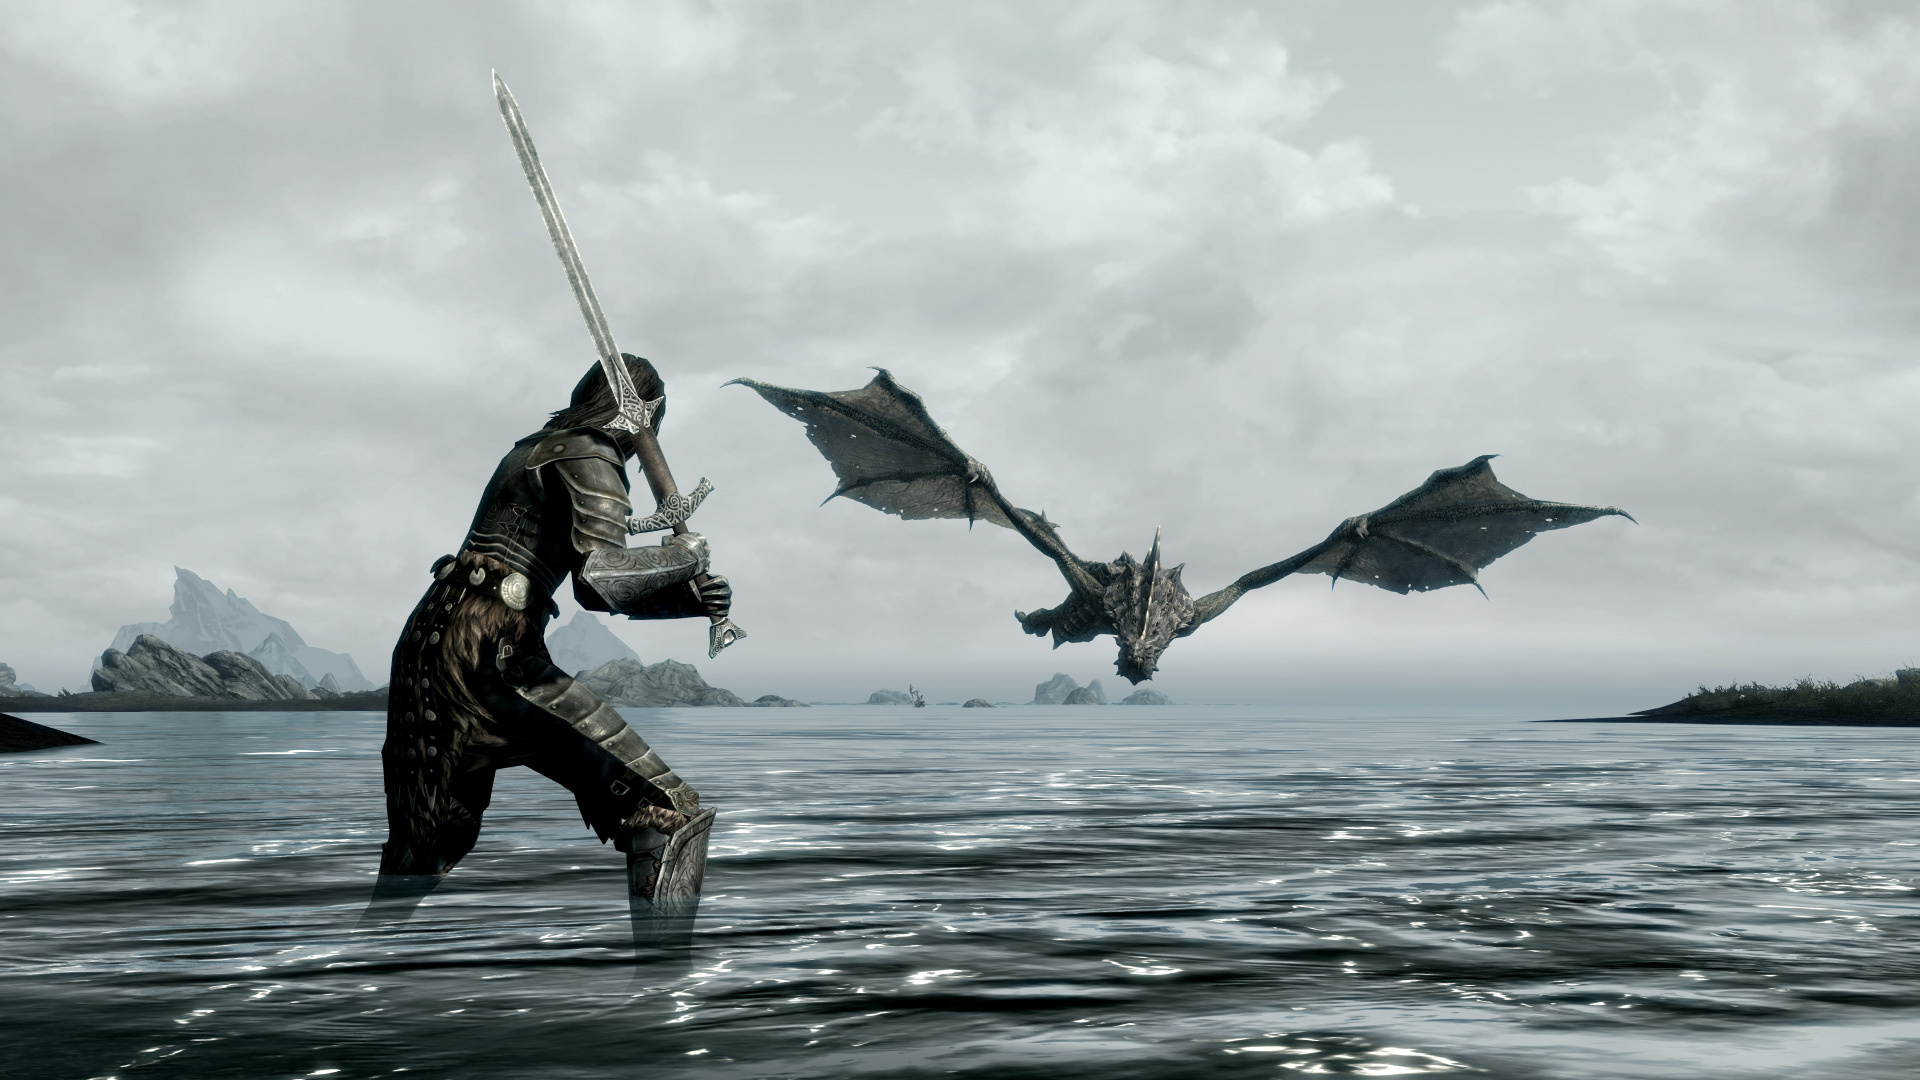 Wallpaper The Elder Scrolls V: Skyrim Warrior in the water and the dragon